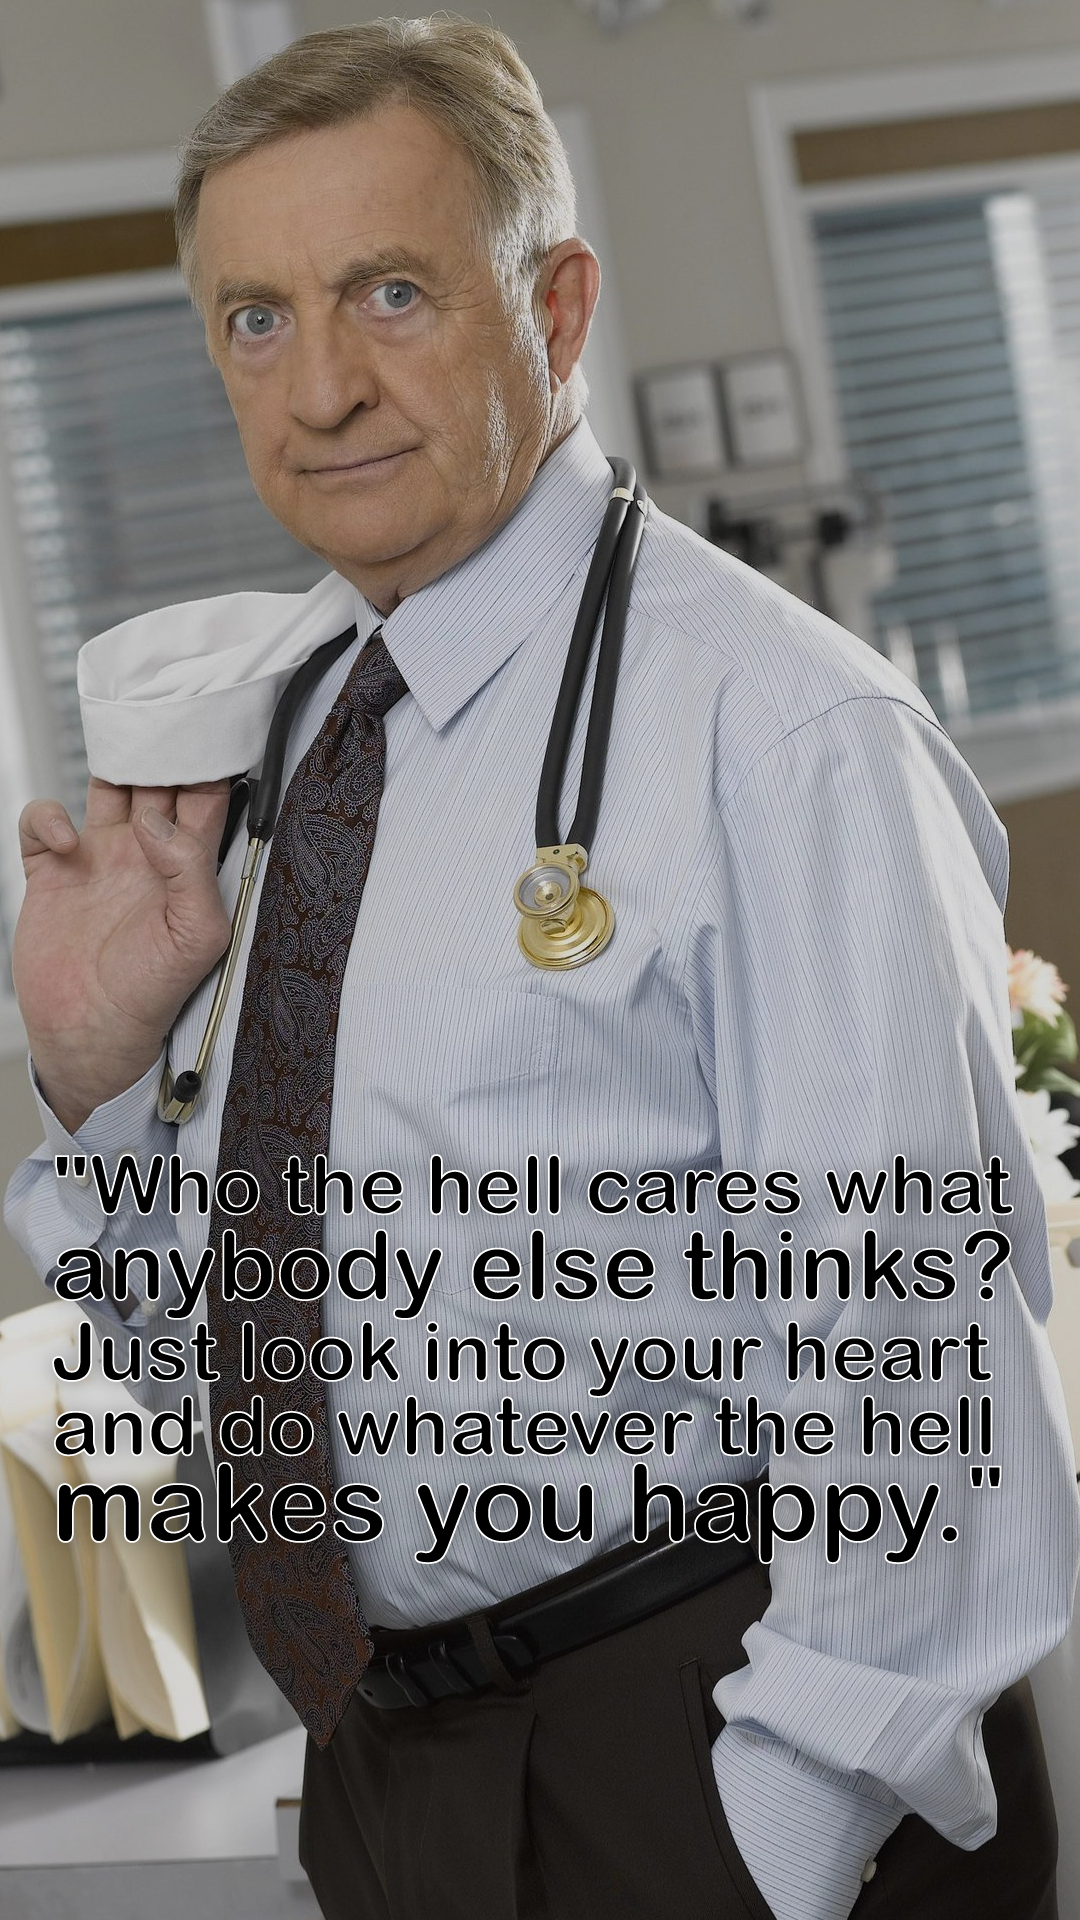 [IMAGE] For many years, I've lived by these words by character Bob Kelso from the show Scrubs. In a society where appearances on social media are everything and where people on their death bed realize that they've lived someone else's life, I think this statement is more important than ever.